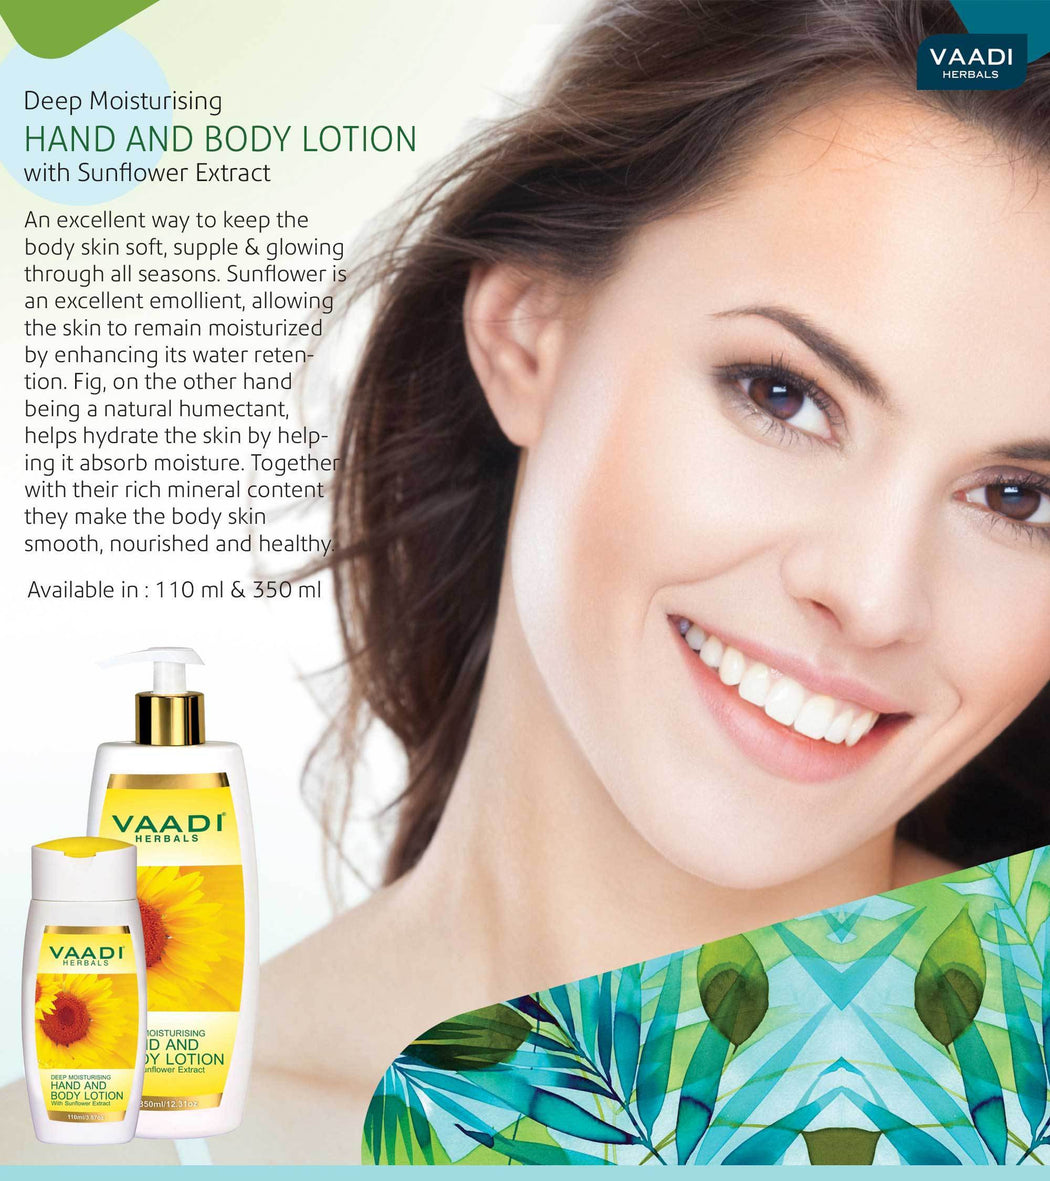 Organic Hand & Body Lotion with Sunflower Extract - Enhances Water Retention in Skin - Keeps Skin Soft (3 x 110 ml/4 fl oz)